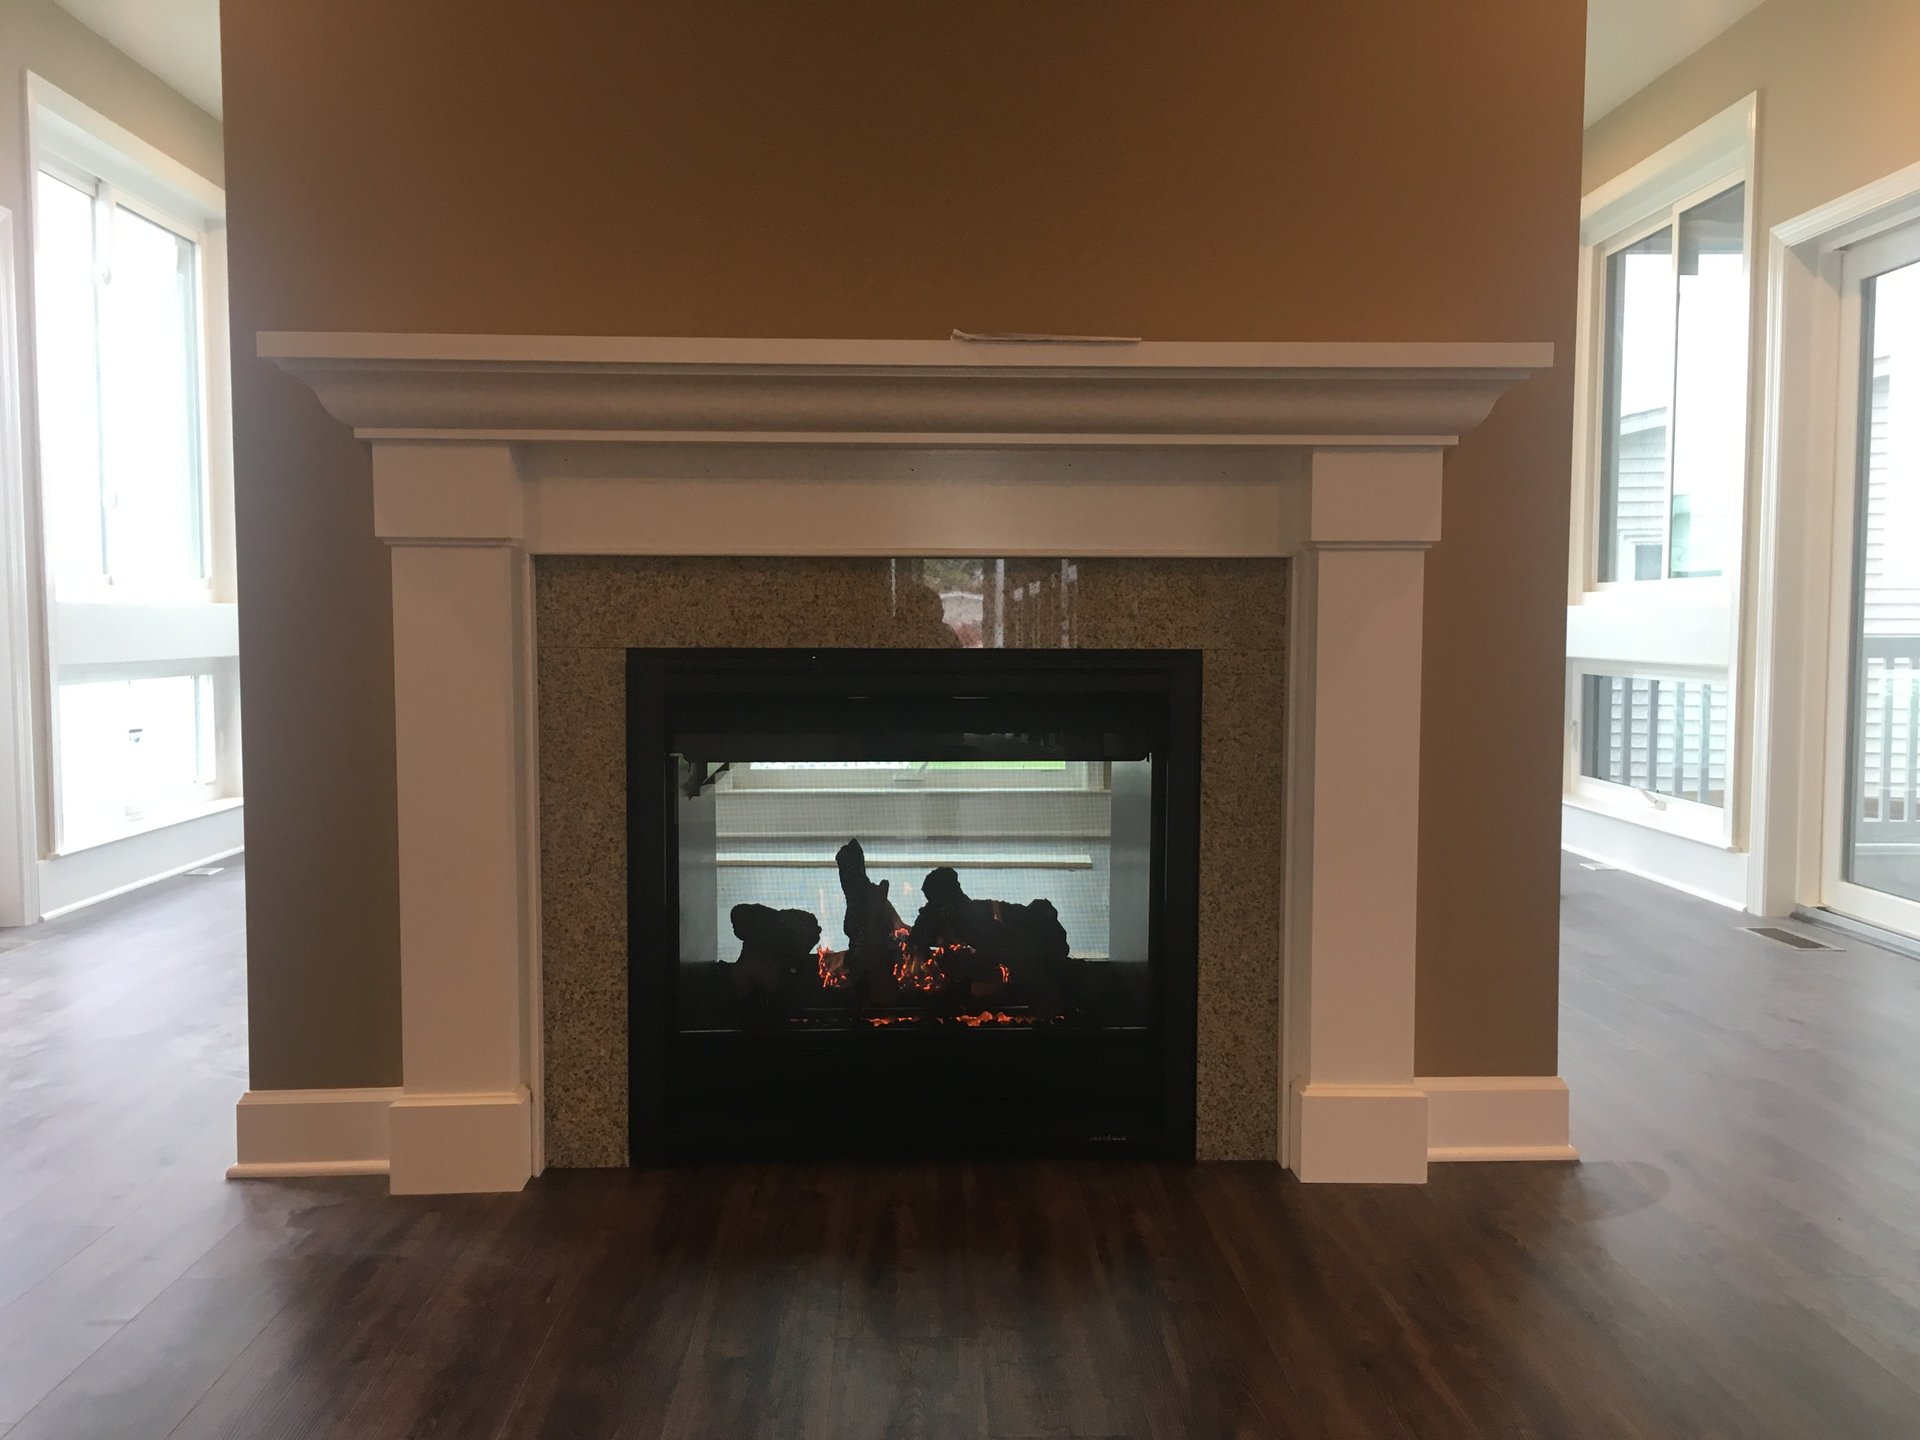 xtrordinair safety interest high builder s new boulevard heats and options mean screens fireplace as up barrier products linear modern output